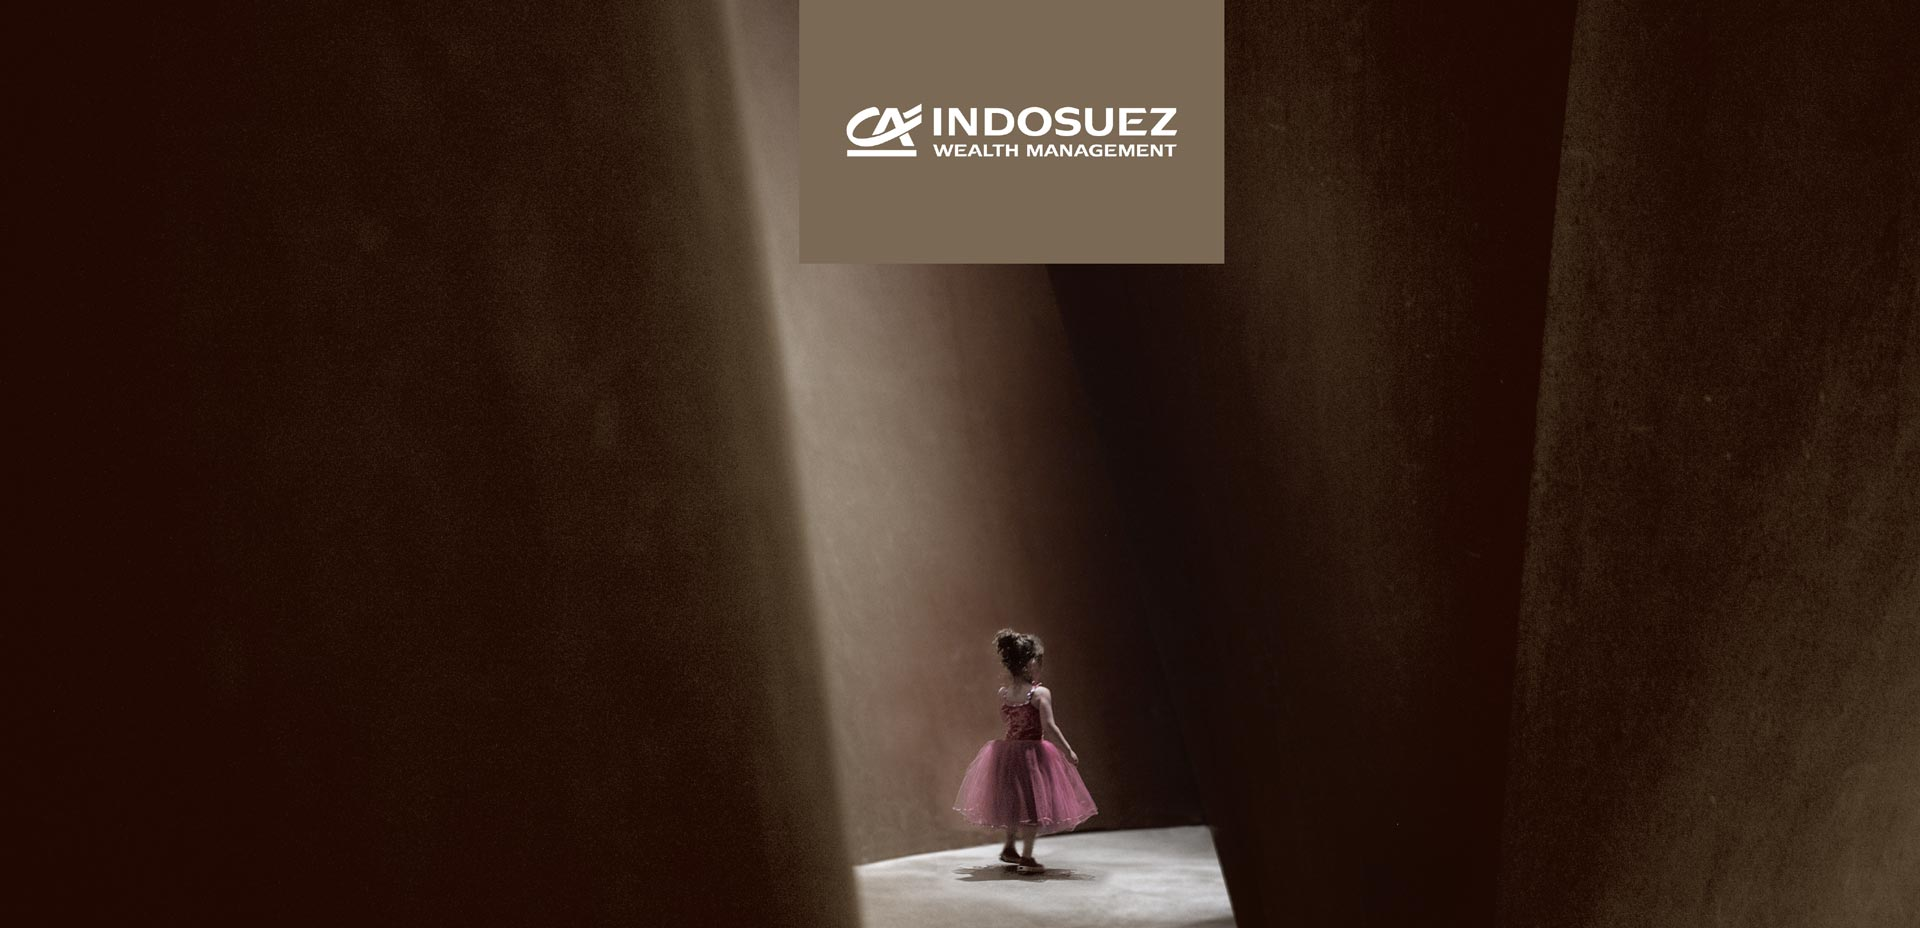 Indosuez Wealth Management launches its worldwide brand, created by Nucleus